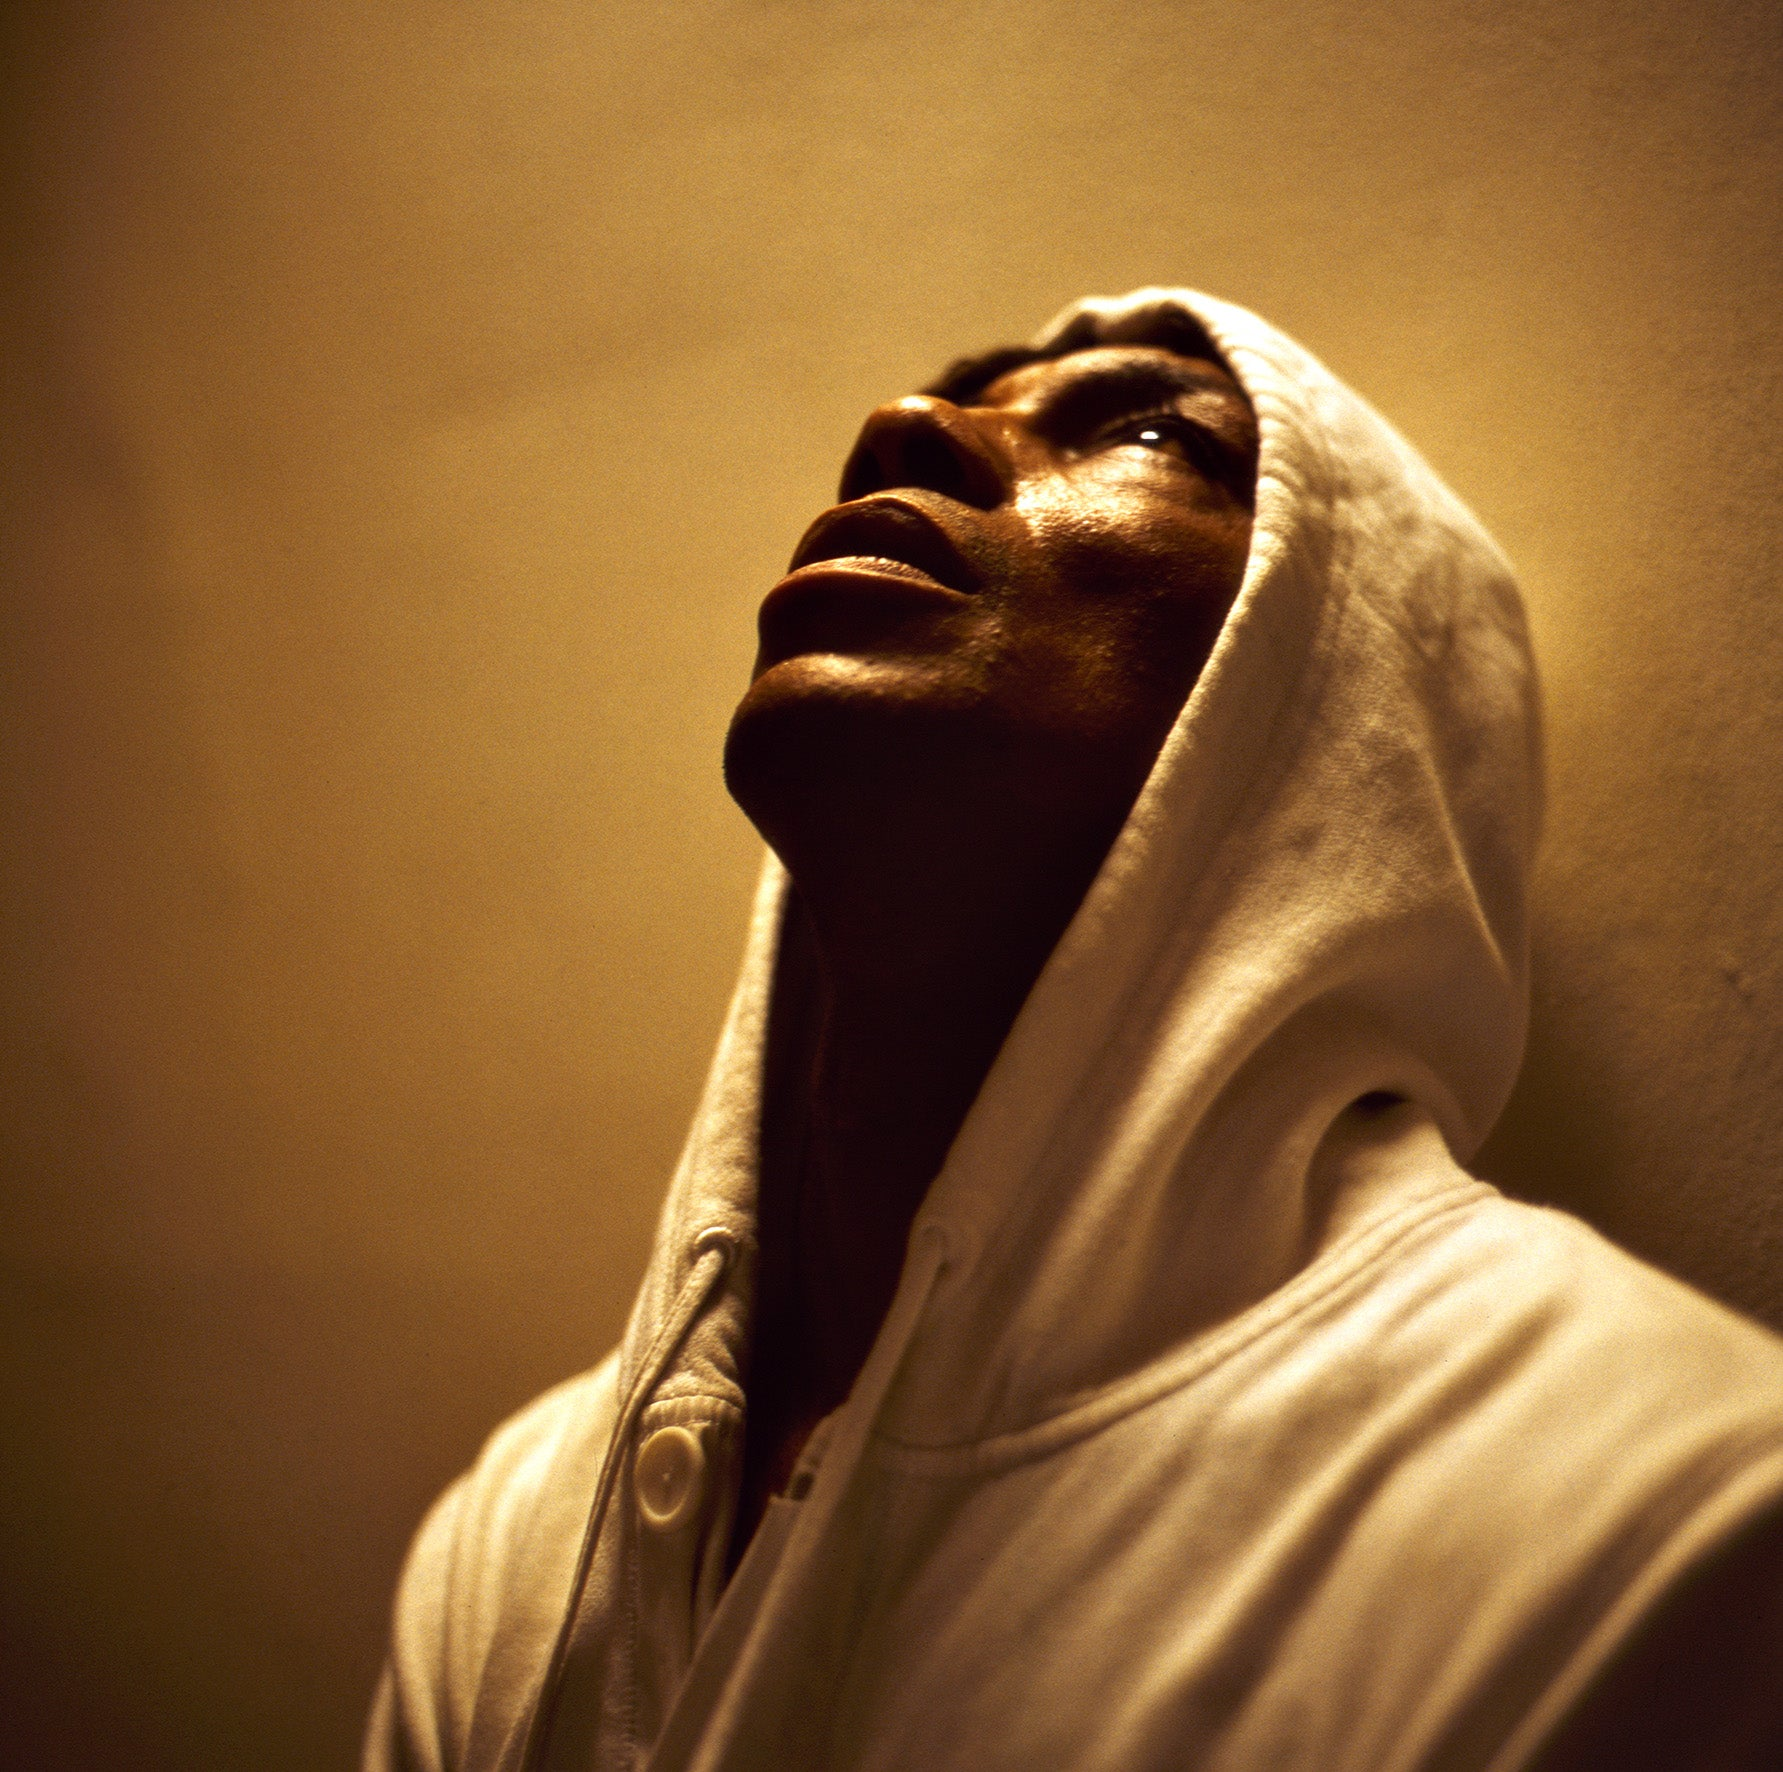 Tricky's memoir Hell is Round the Corner is a sterling lesson in stoicism